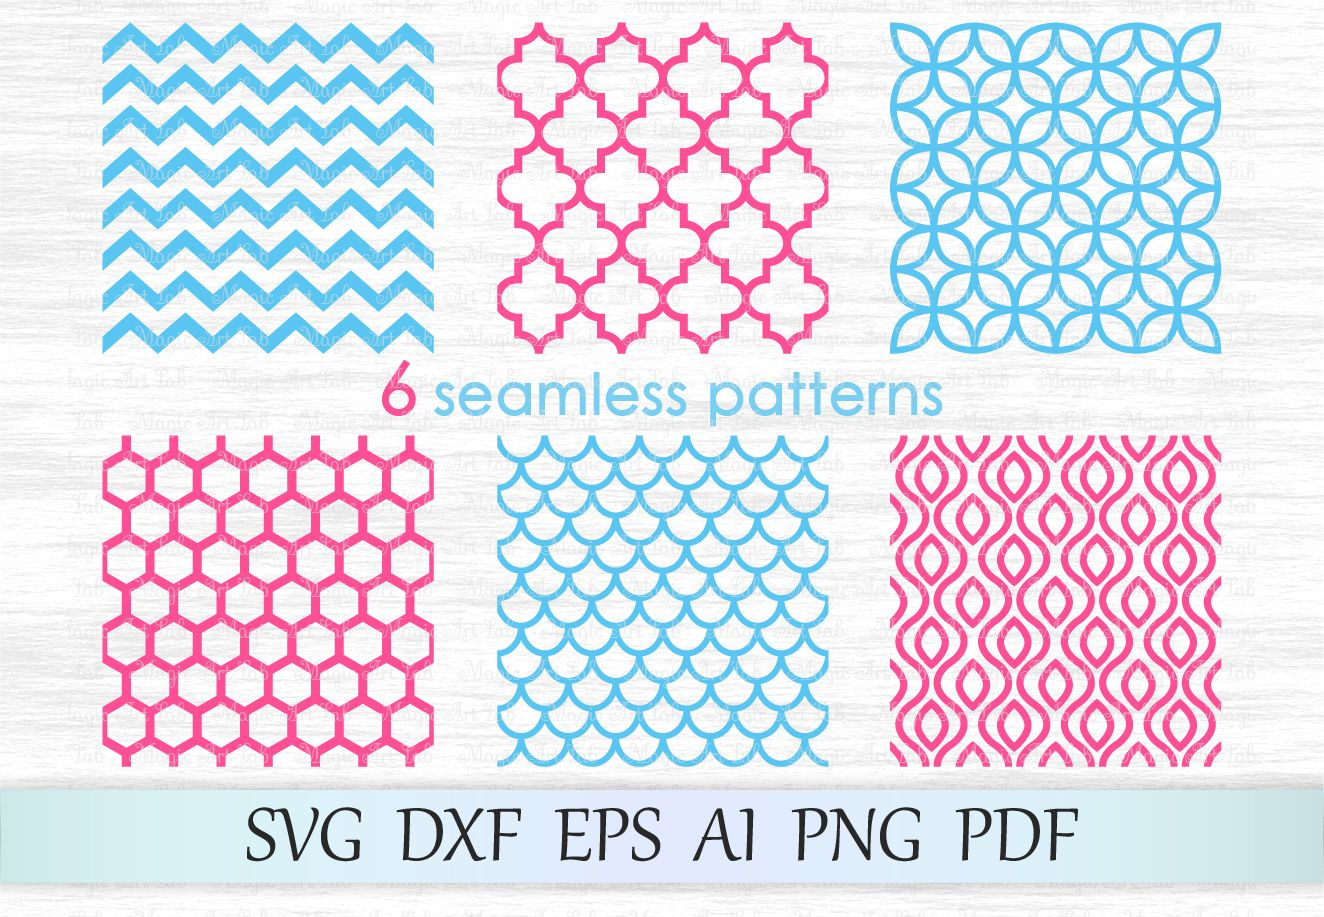 Seamless patterns svg, Mermaid scale pattern svg, Patterns